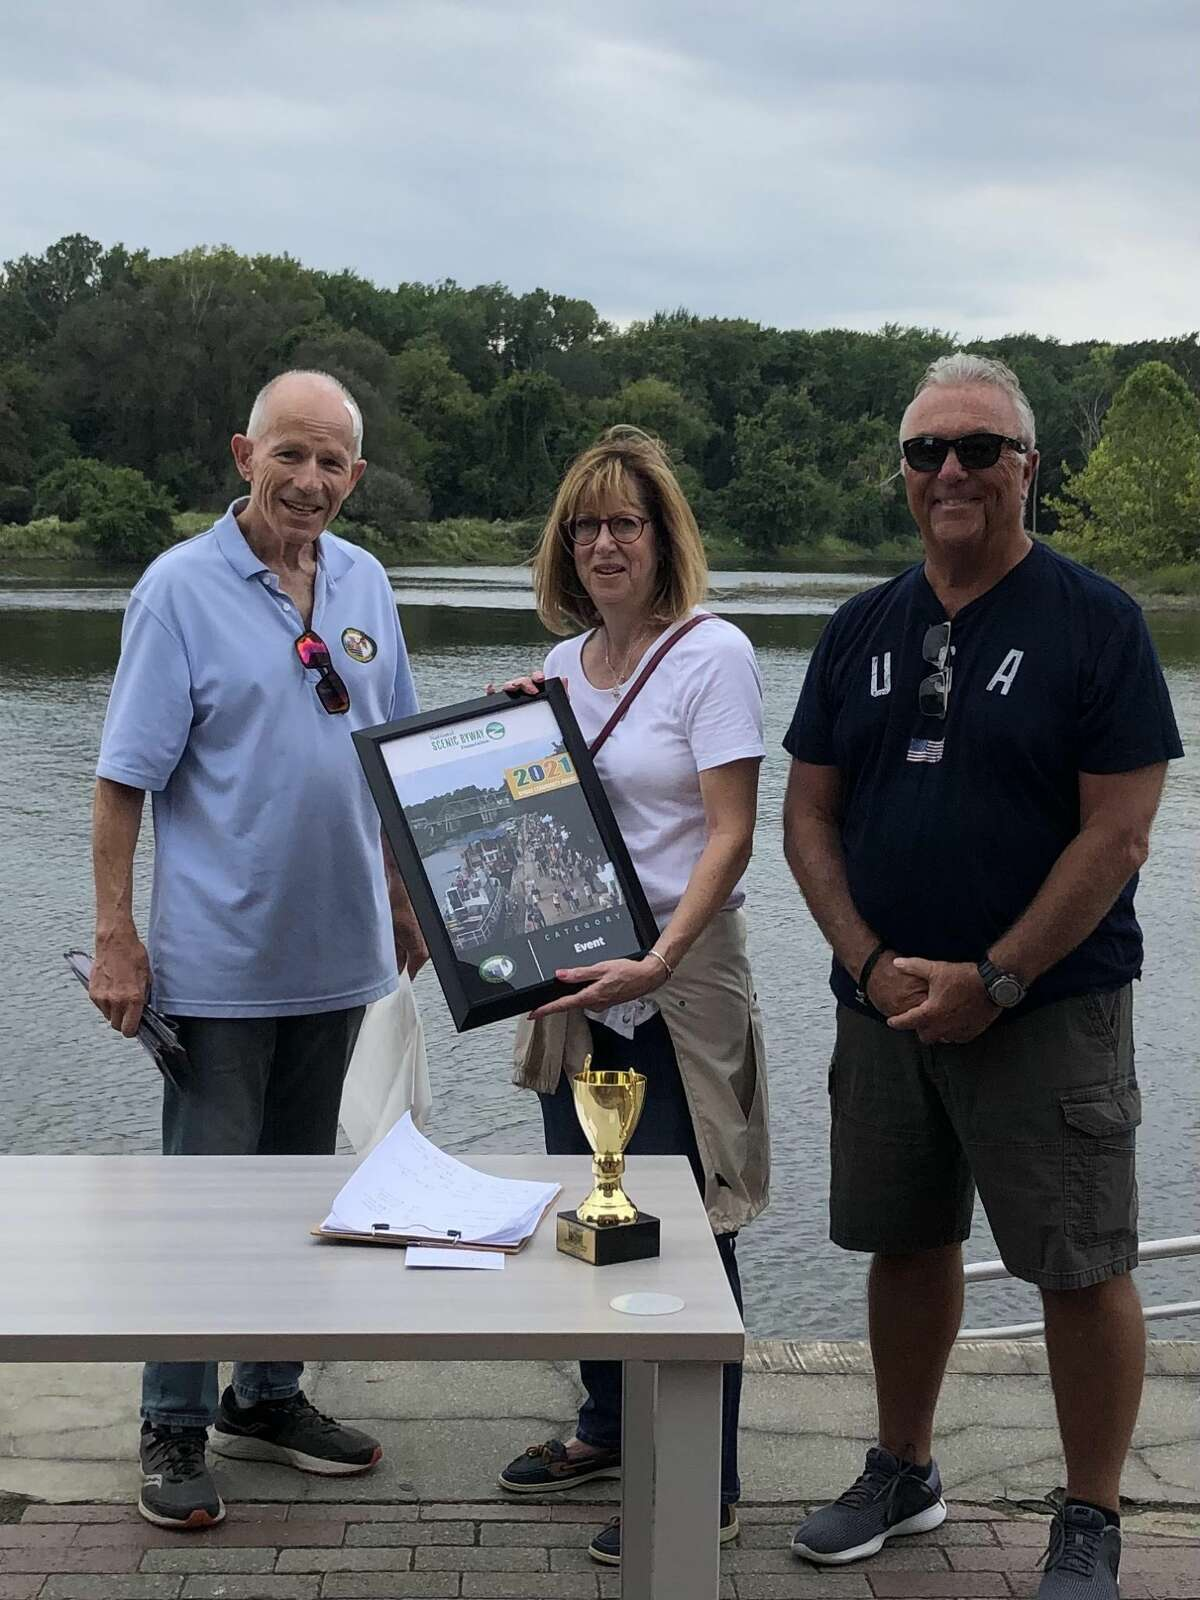 Mohawk Towpath Scenic Byway Executive Director Eric Hamilton presents the Town of Waterford with the National Byway Community Award at the recent Tugboat Roundup held in Waterford. The award recognizes the success of byways and the community leaders. Left to right: Eric Hamilton, Town Councilwoman Laurie Marble, Town Councilman Jim Boudreau.